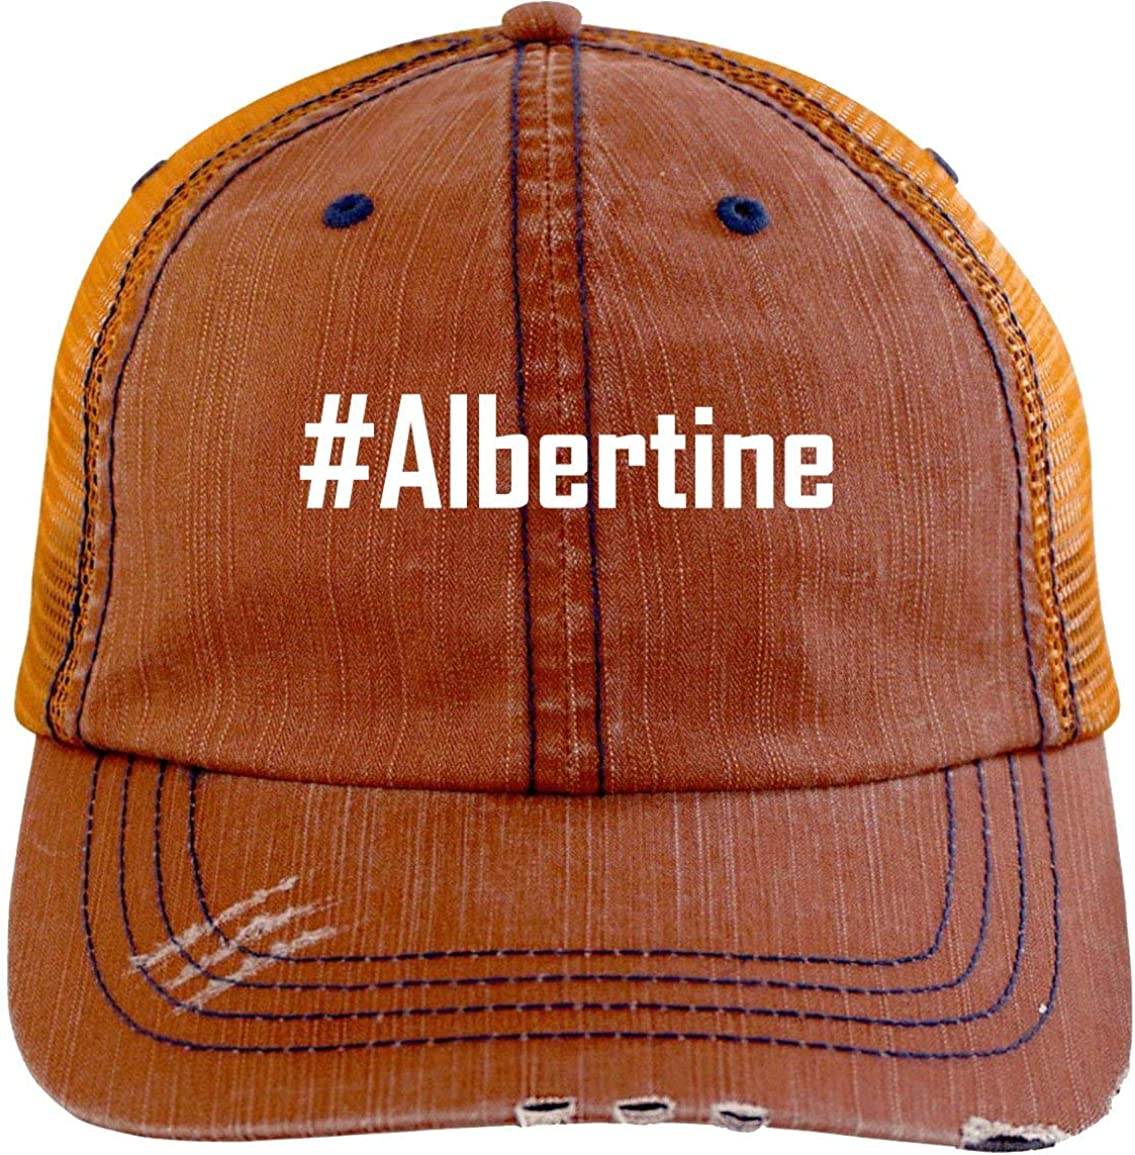 #Albertine - A Nice Adjustable Embroidered Hashtag Dad Hat Cap 715mKwmZzUL